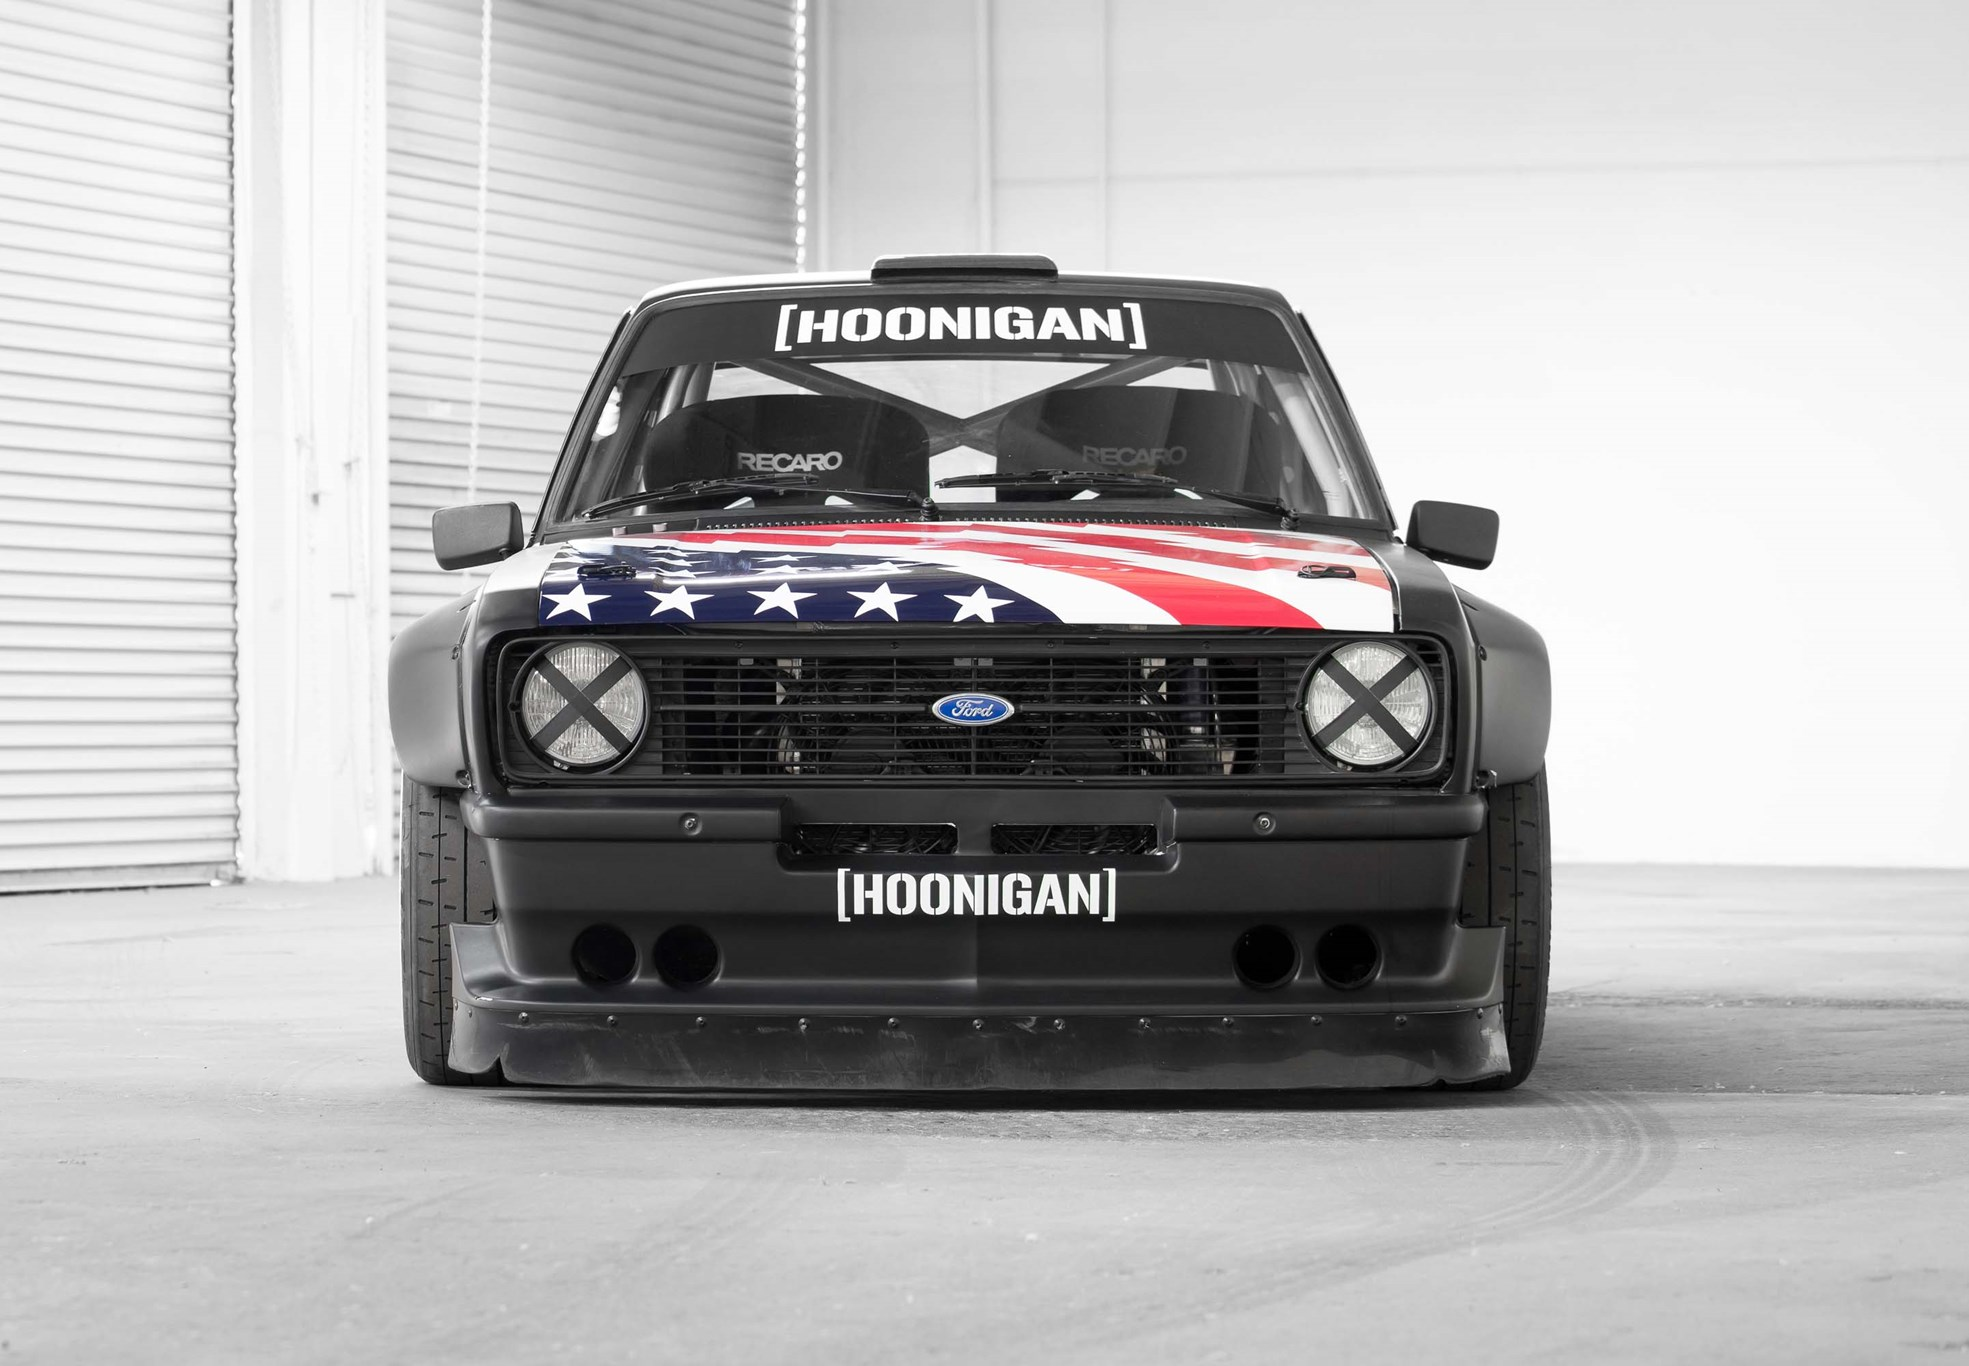 Hoonigan Escort >> Old school rules: Ken Block's new Ford Escort Mk2 Gymkhana car by CAR Magazine